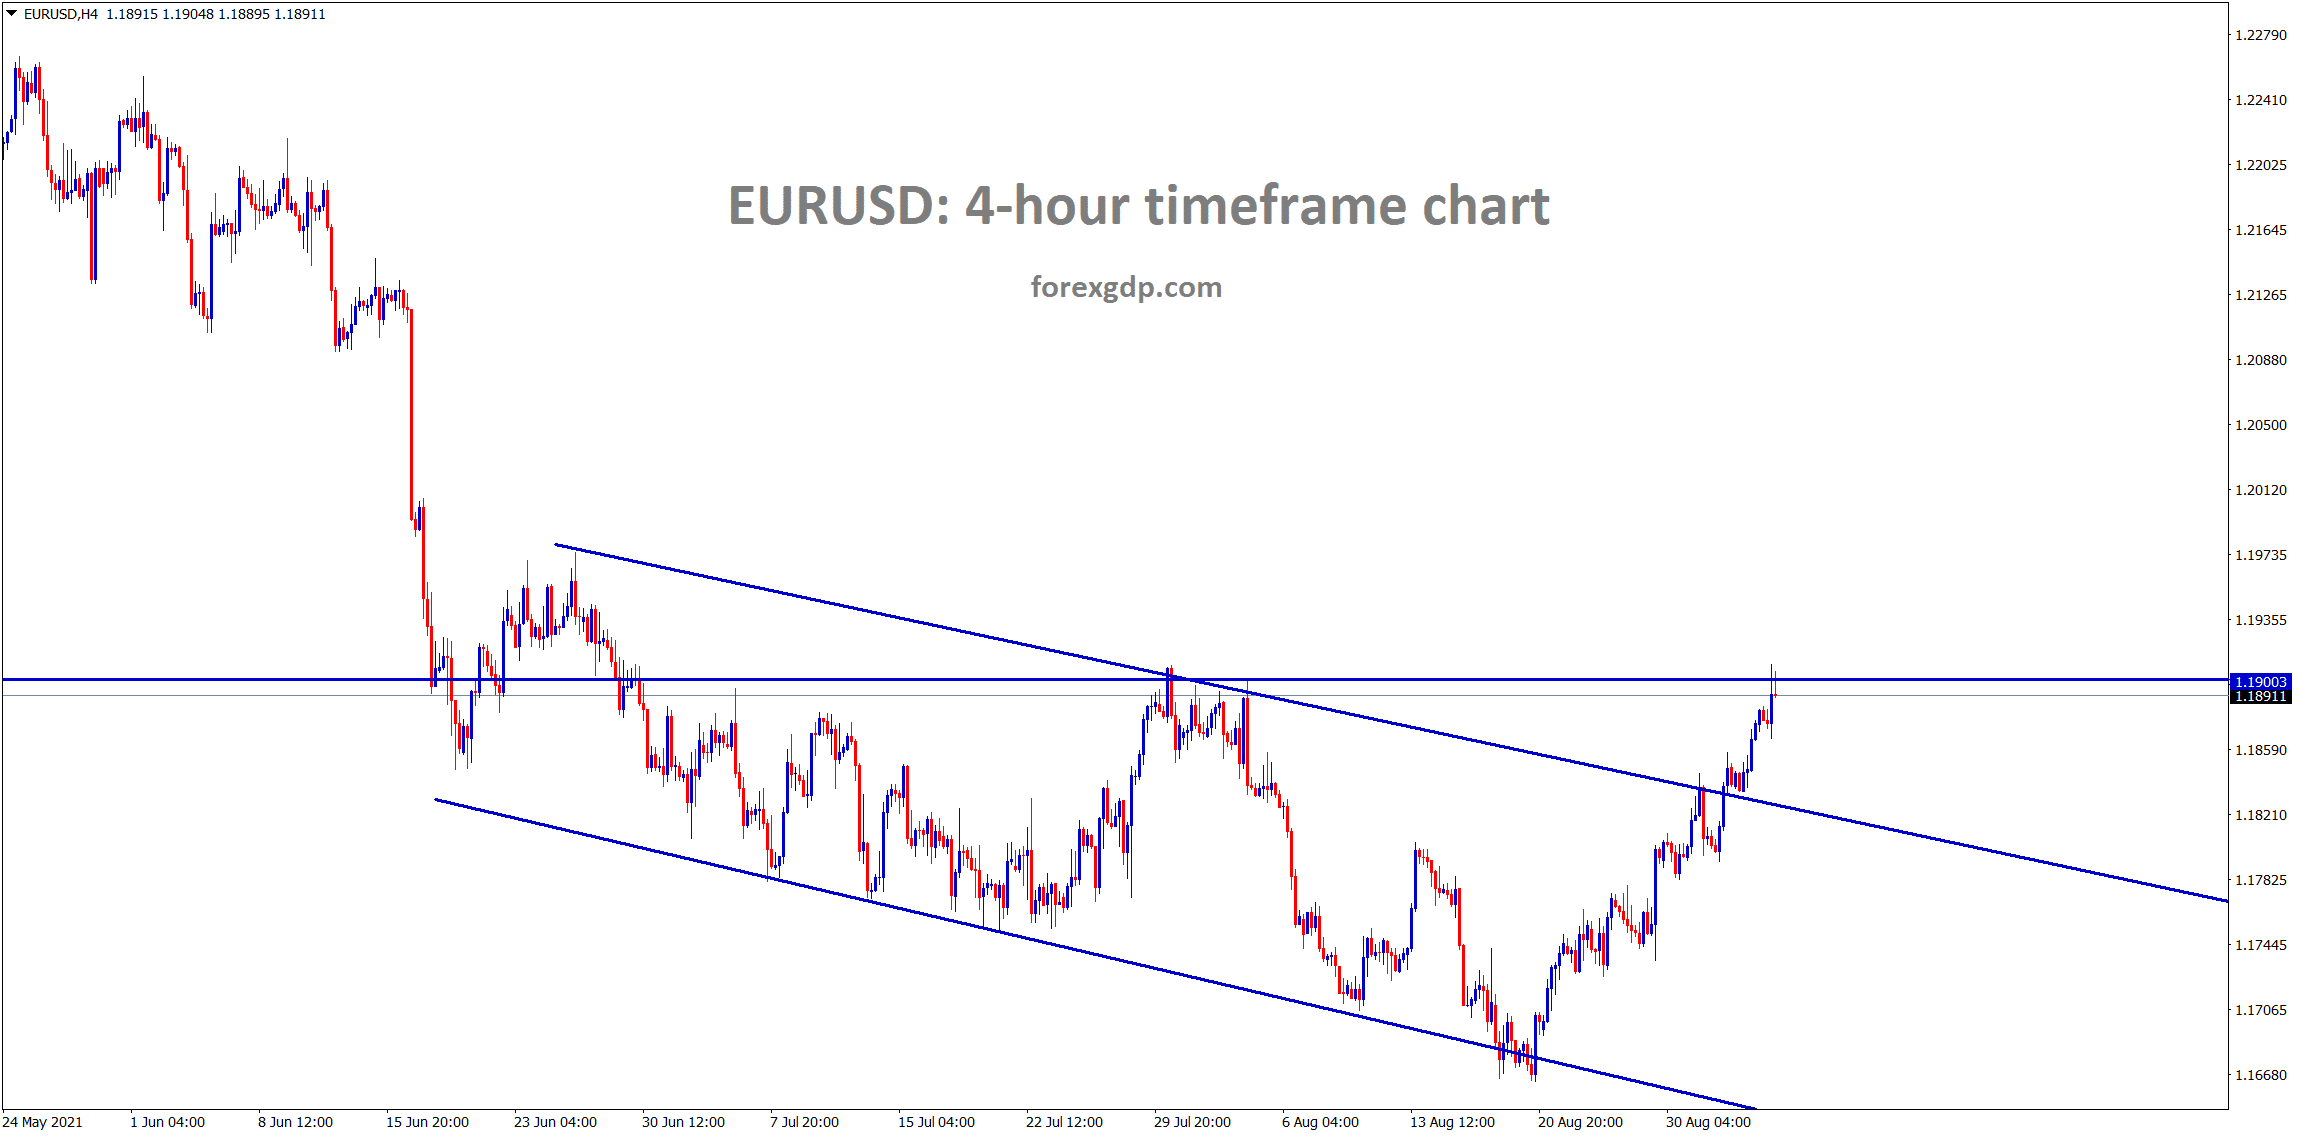 EURUSD has reached the horizontal resistance area after breaking the descending channel